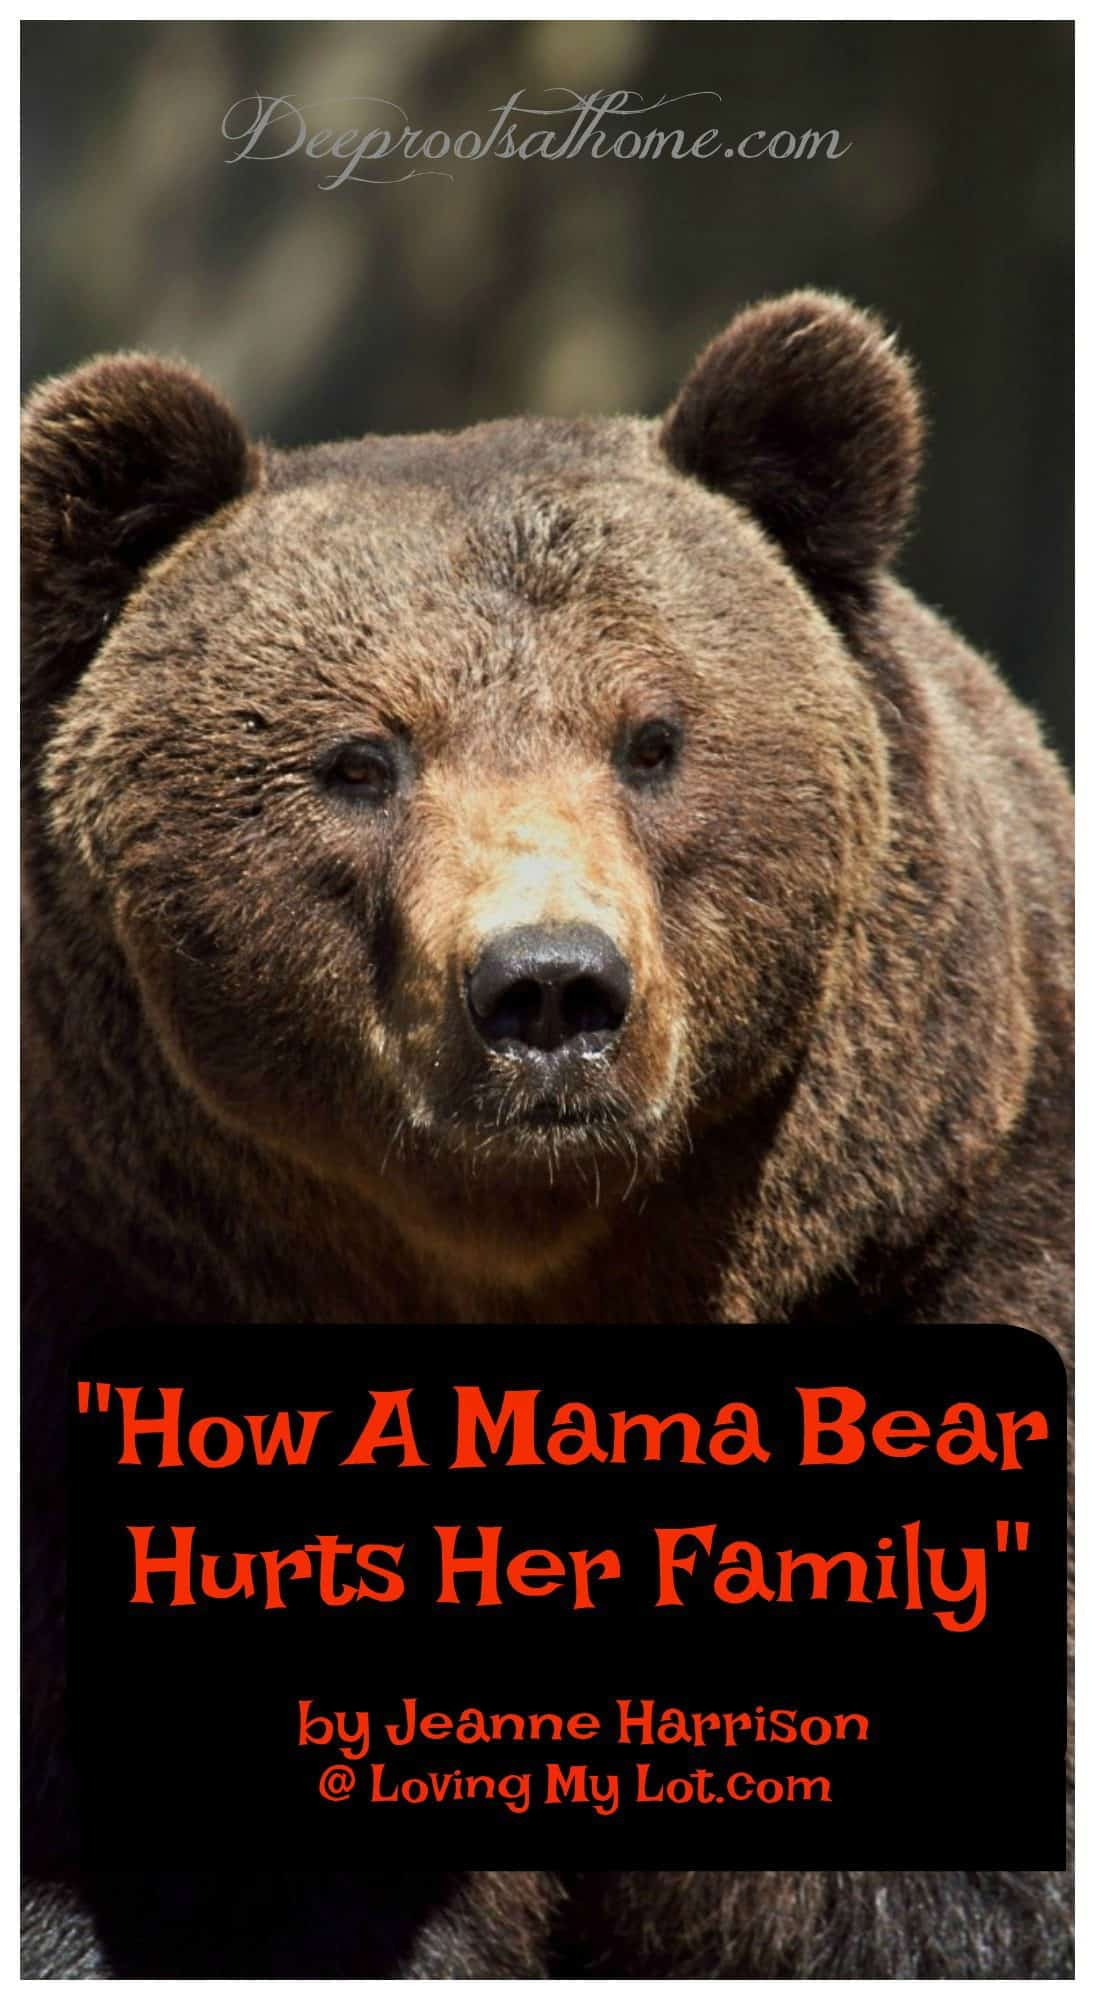 """How A Mama Bear Hurts Her Family"" by Jeanne Harrison, analogy, mama swan, cygnets, grizzly bear, loud, obnoxious, family, care too much, Christian, protect, fragile, foundation of toothpicks, exhausting, mother, wife, heart, hands, worry, concern, love, joy, affection, fear, emotional capacity, husband,burden, protective, controlling, short-circuit, teaching to trust Jesus, heartache, suffering, abide in Christ, Psalm 46: 1-2, woman, fix it, assurance, house built on sand, Solid Rock, love, selfish,"